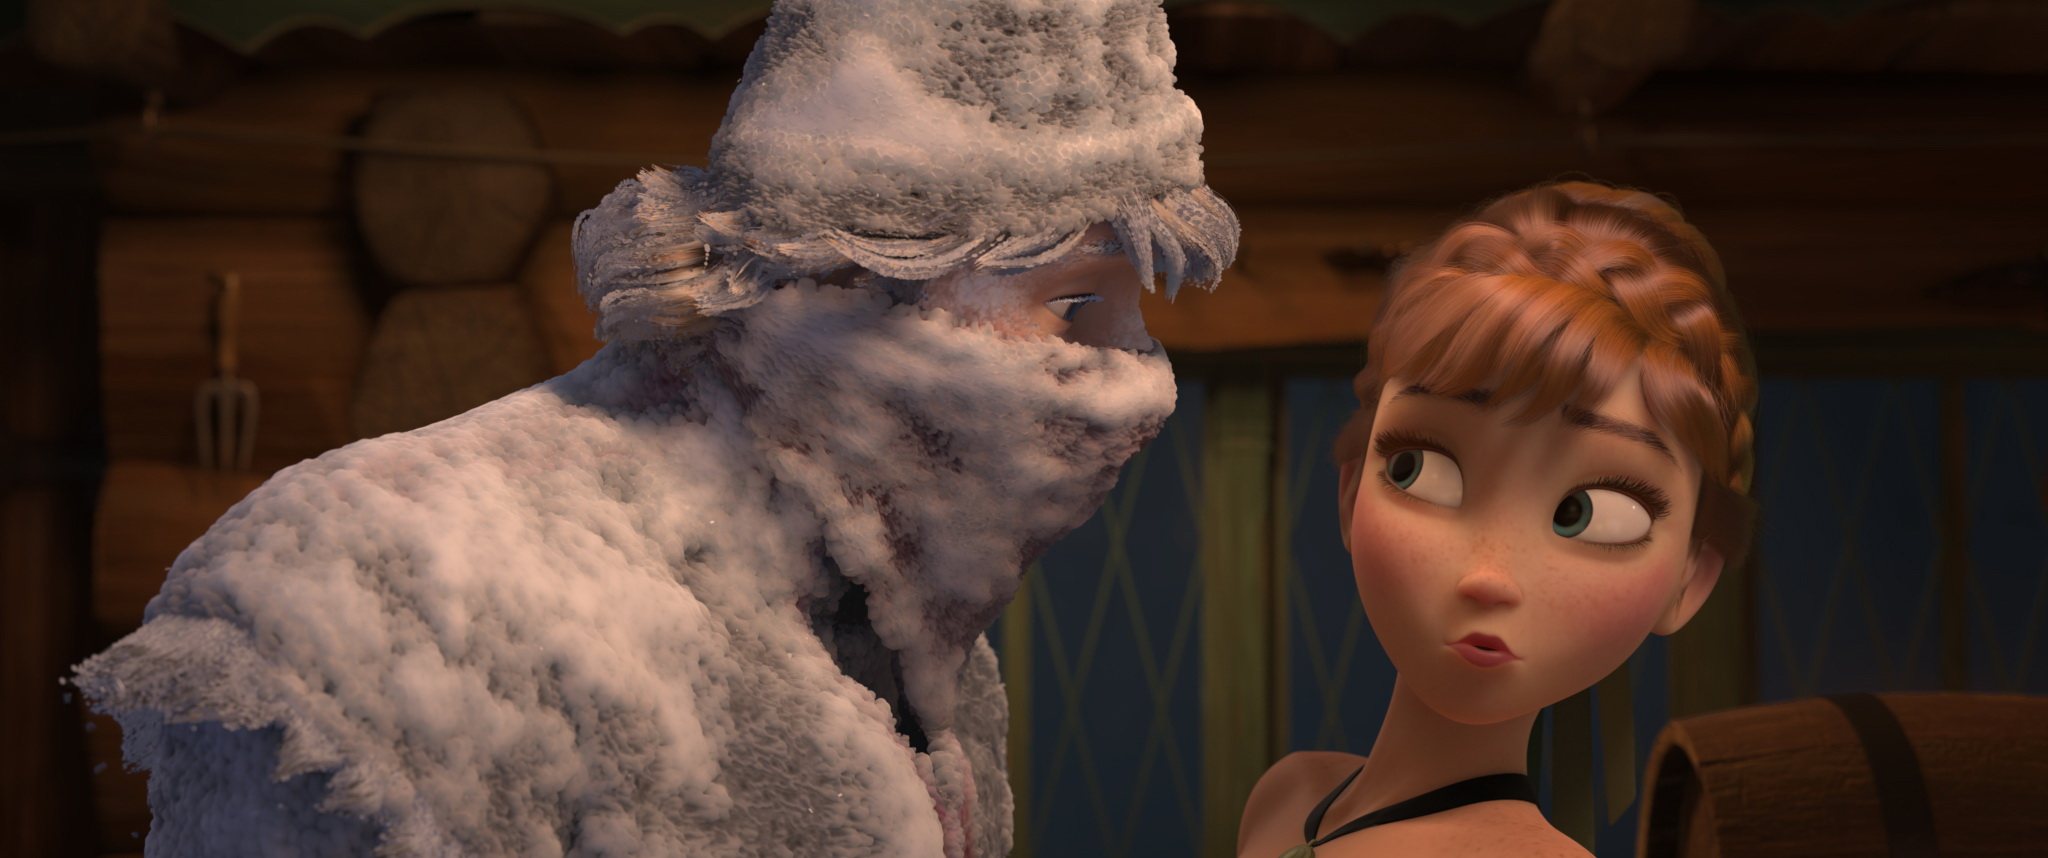 Anna Meeting Kristoff Not Exactly Love At First Sight